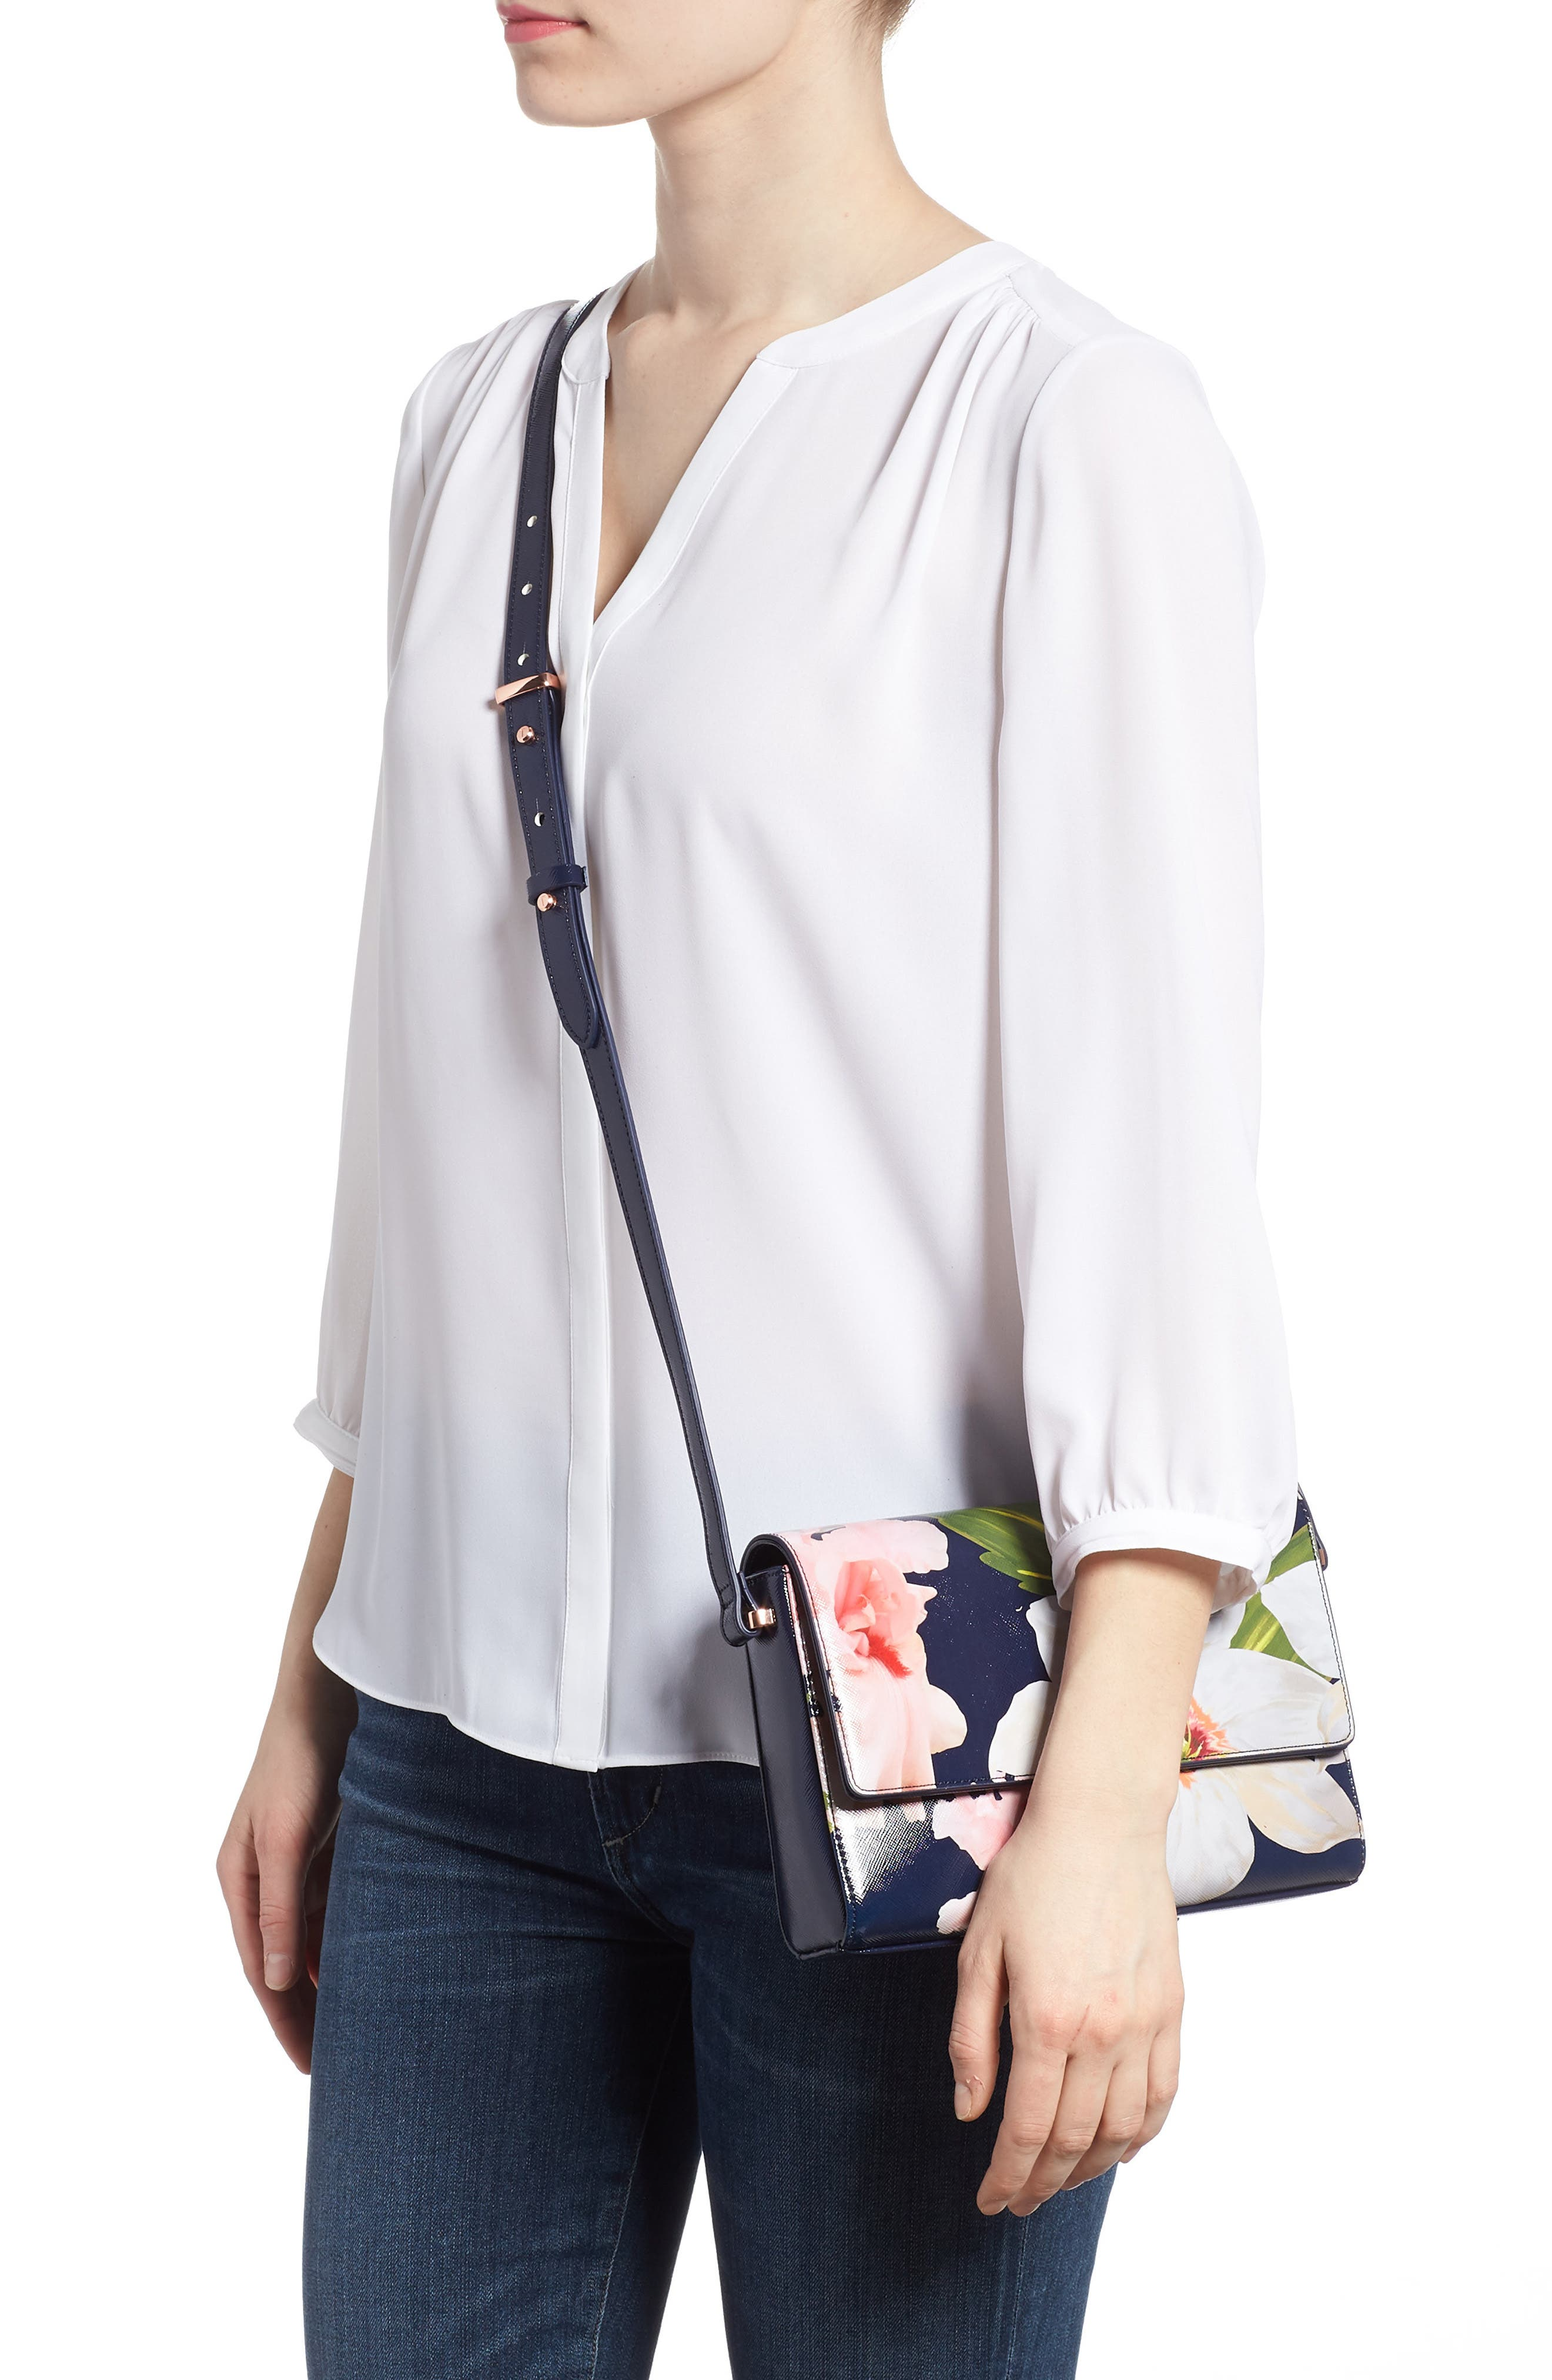 Prim Chatsworth Bloom Faux Leather Crossbody Bag,                             Alternate thumbnail 2, color,                             Navy